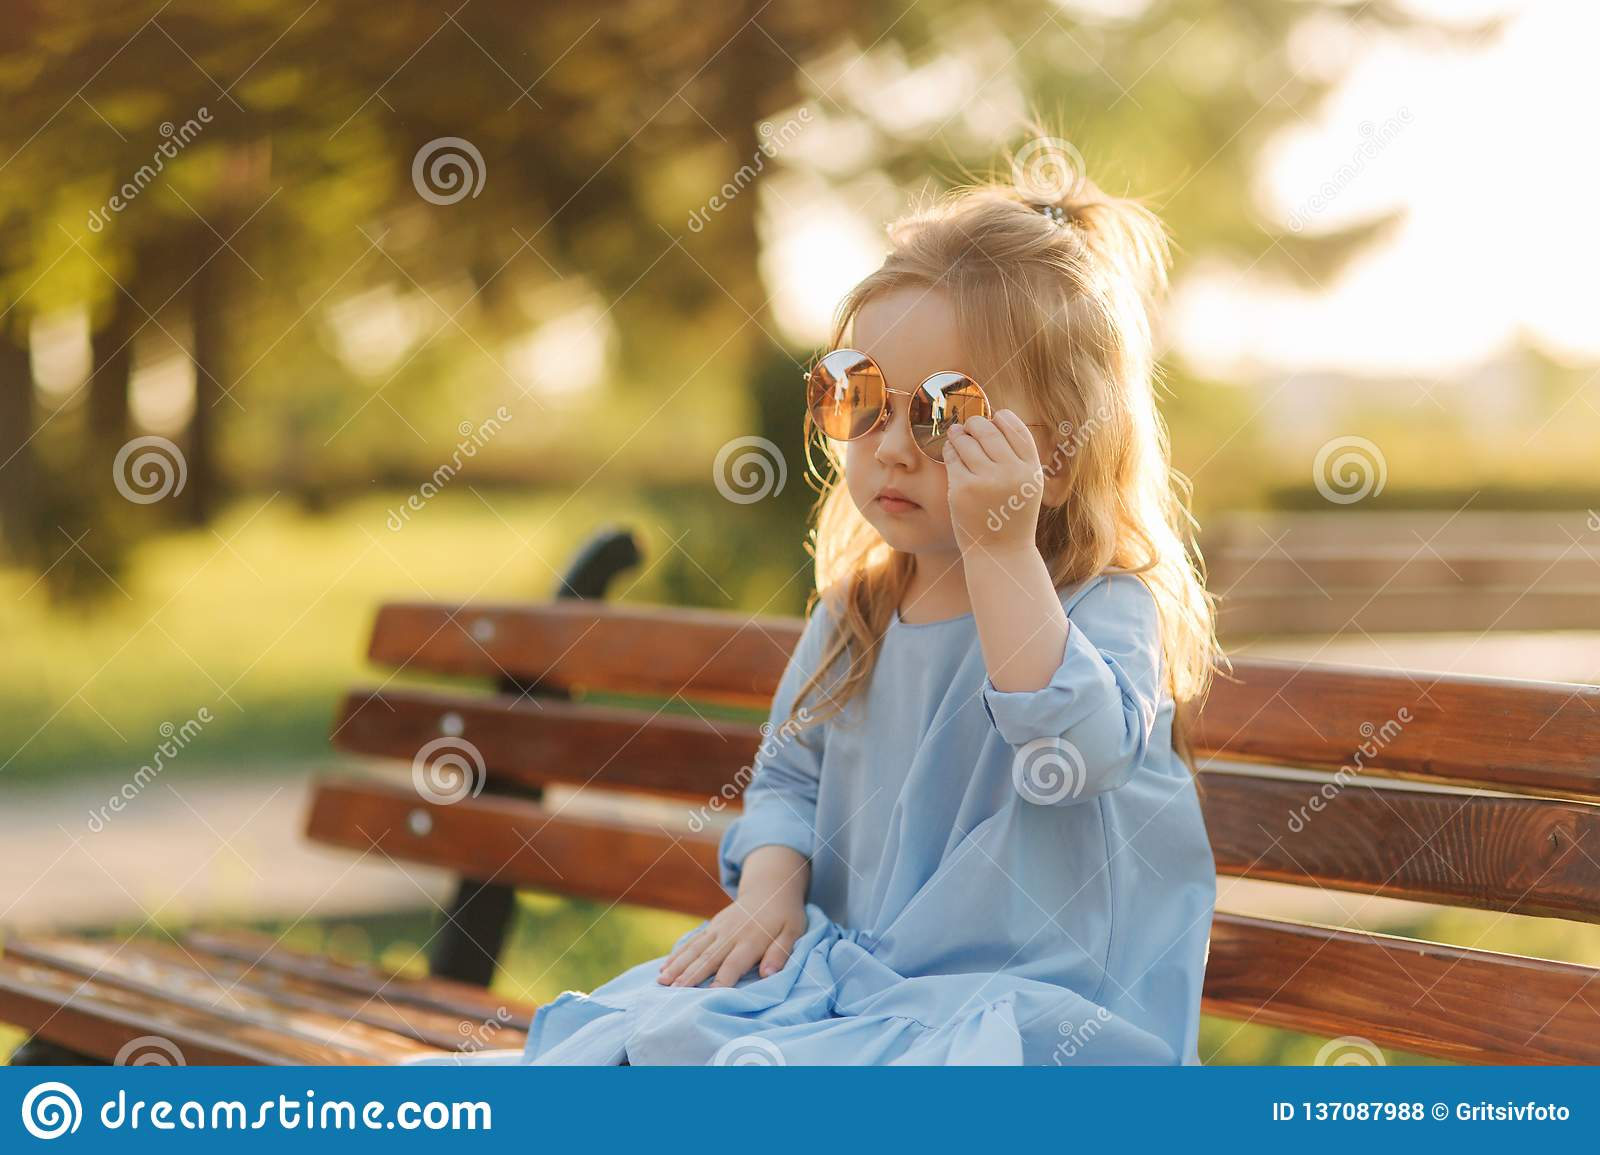 Little girl model in blue dress and sun glasses sits on a bench in the park